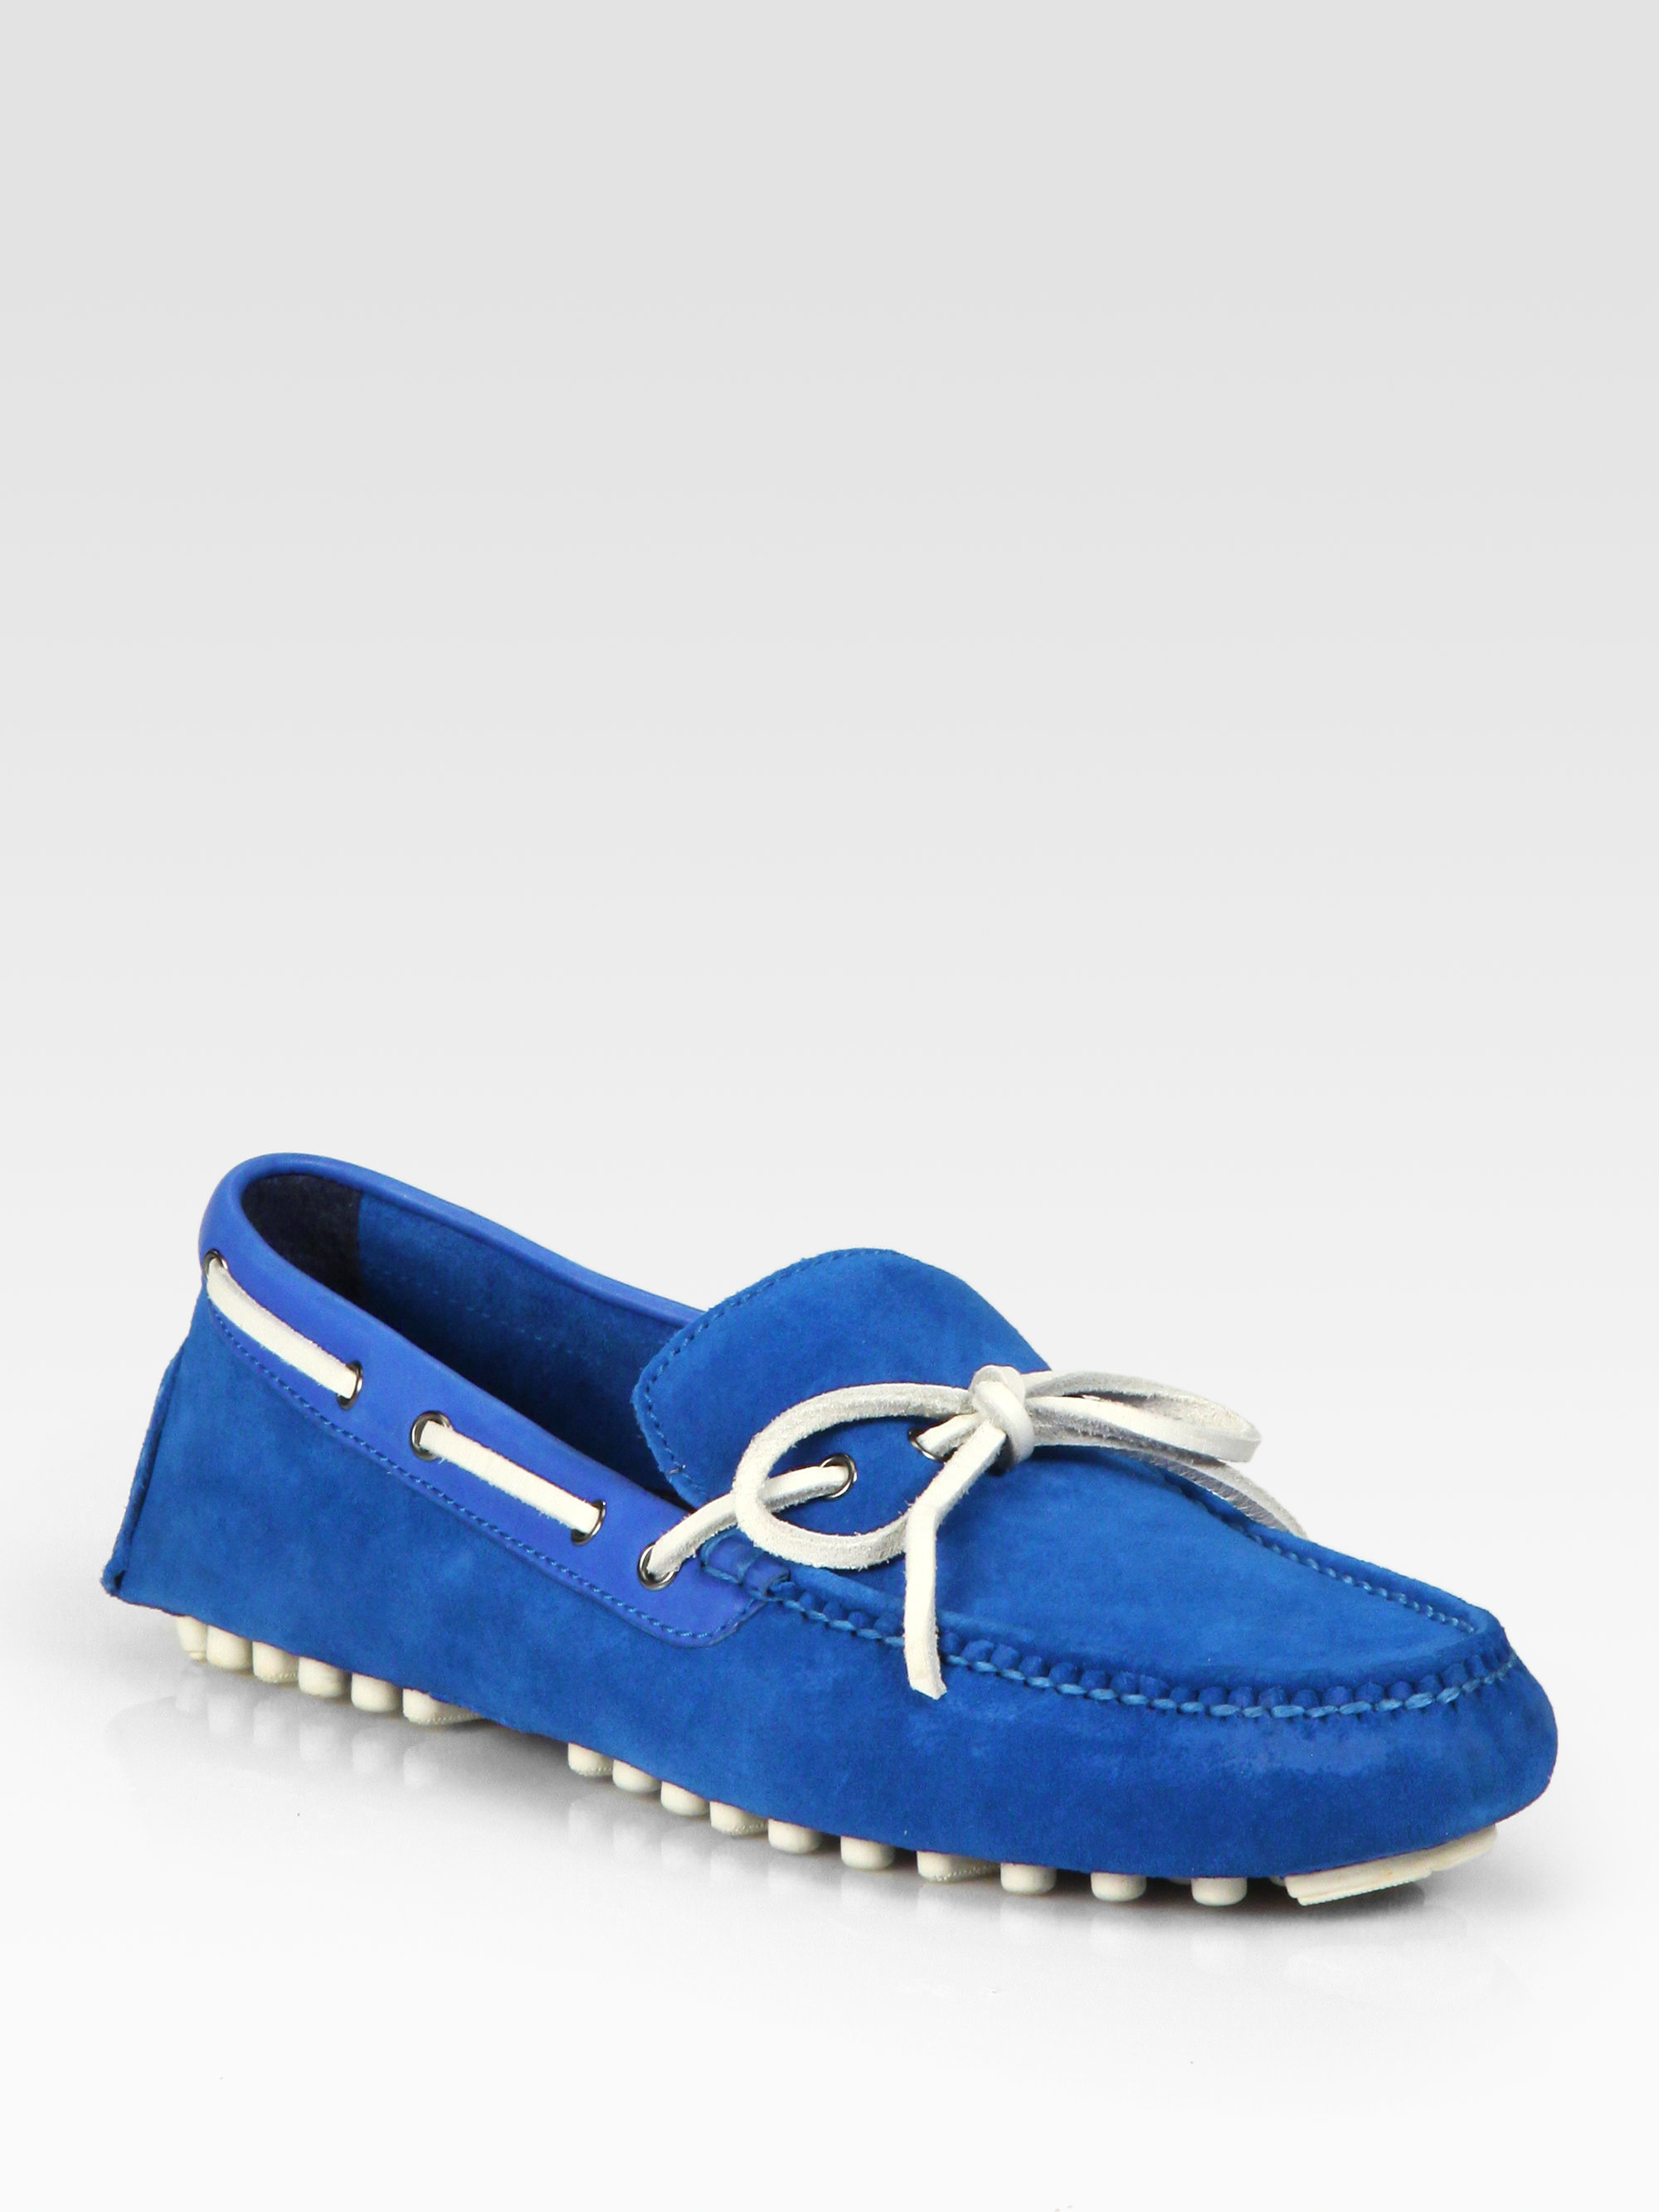 9b7bf401b33b76 Lyst - Cole Haan Air Grant Driving Moccasins in Blue for Men